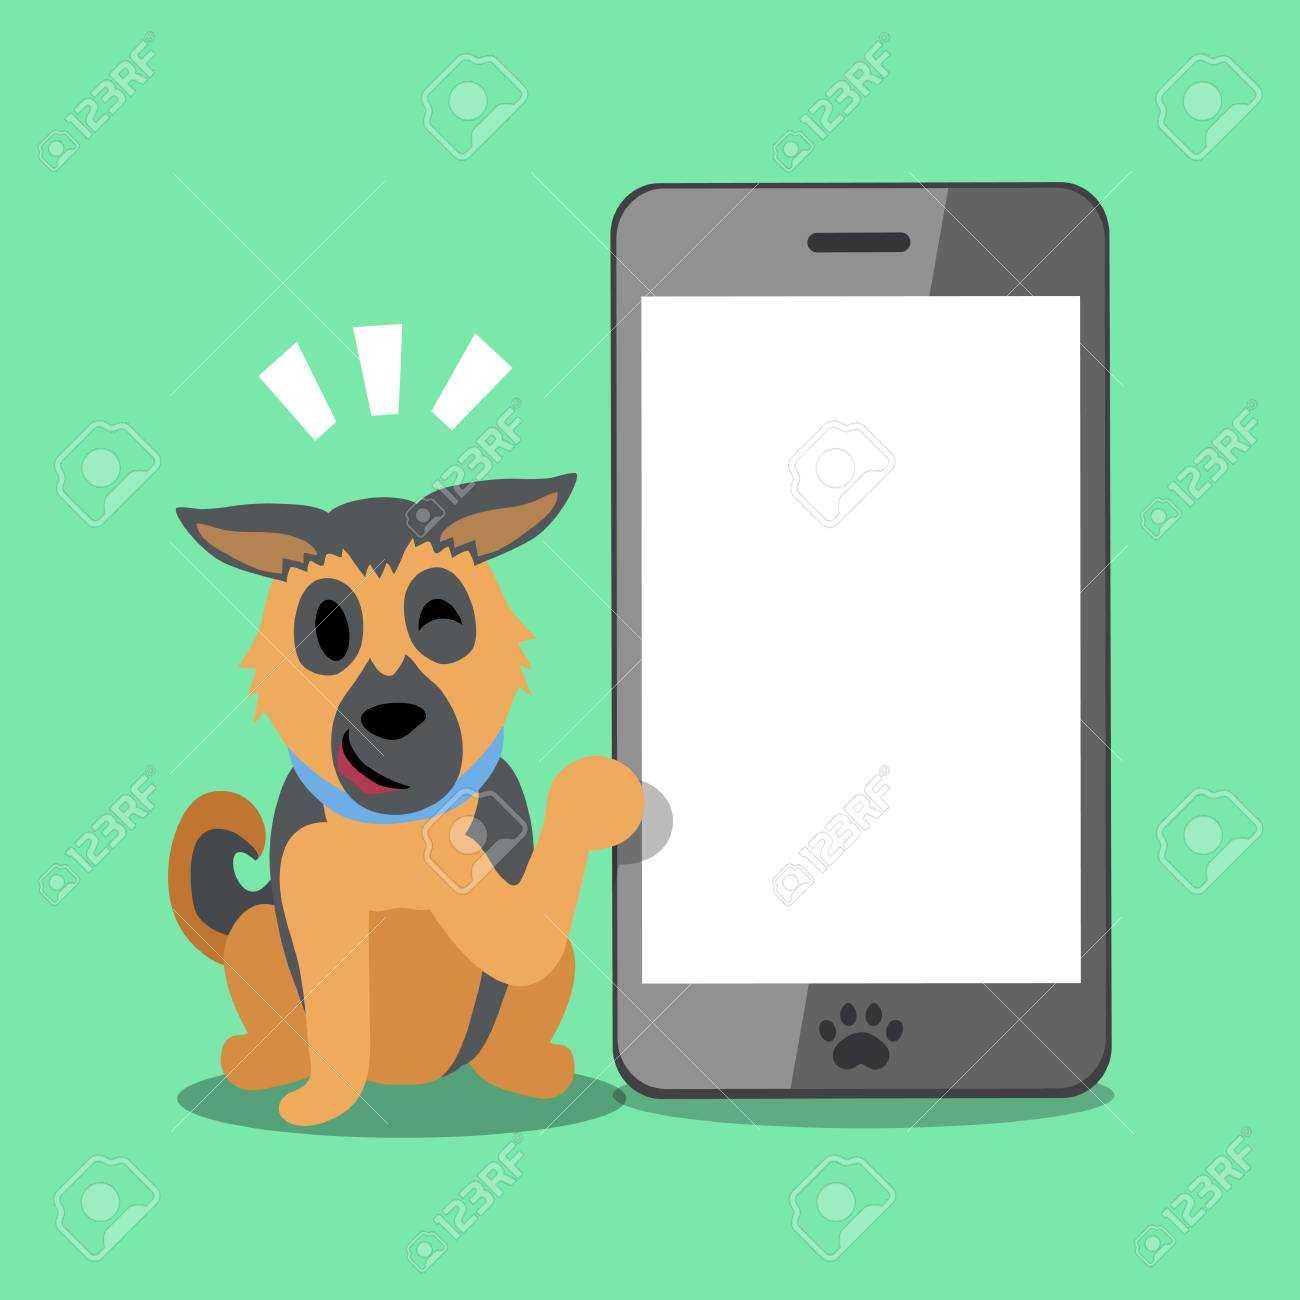 Cartoon Character German Shepherd Dog And Big Smartphone Royalty